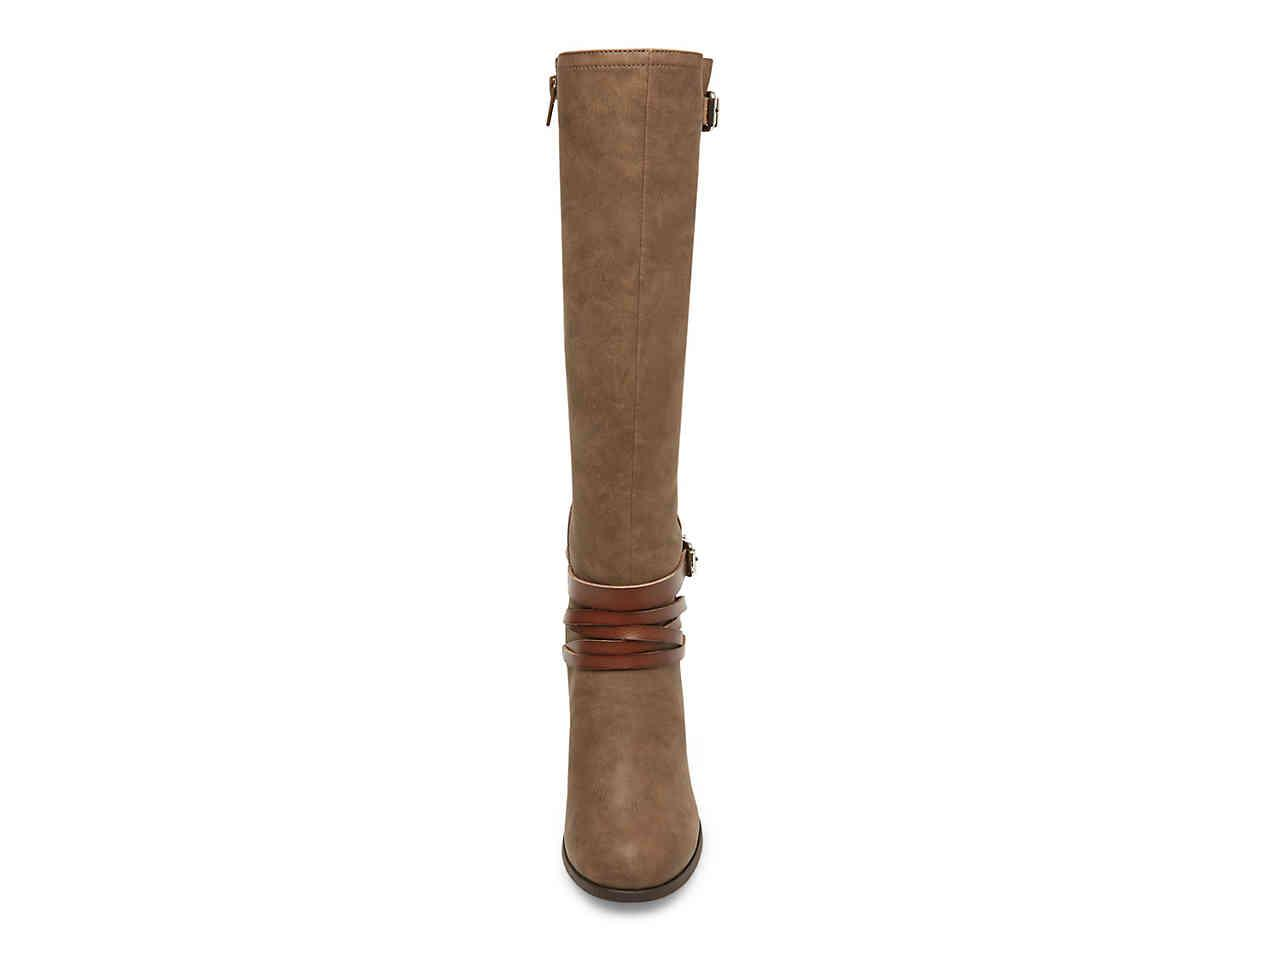 Madden Girl Dash Boot in Taupe (Brown